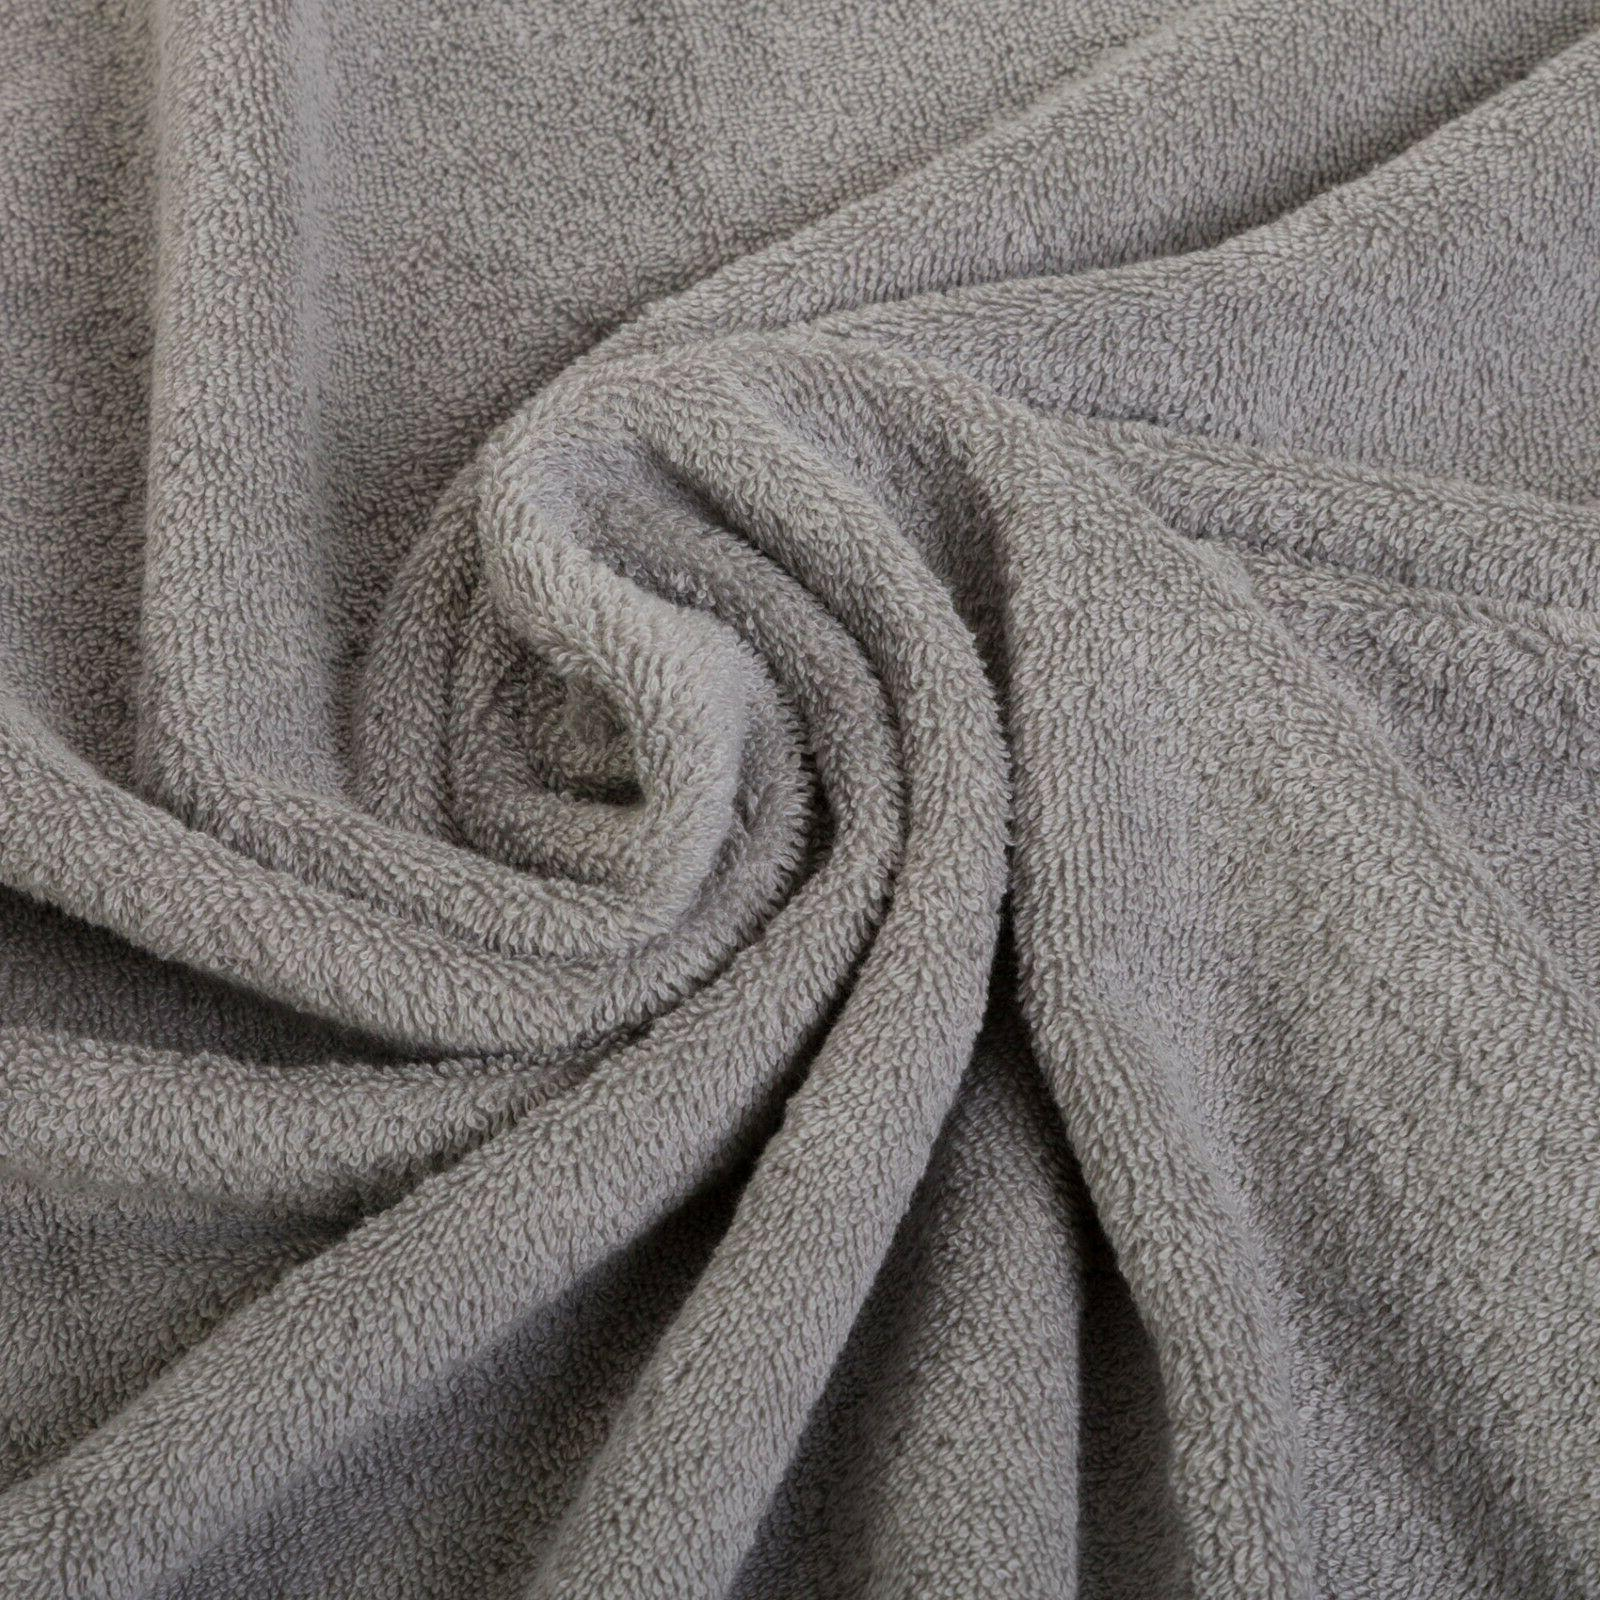 NEW GREY SUPER LUXURY PURE TURKISH COTTON 8 TOWELS SETS